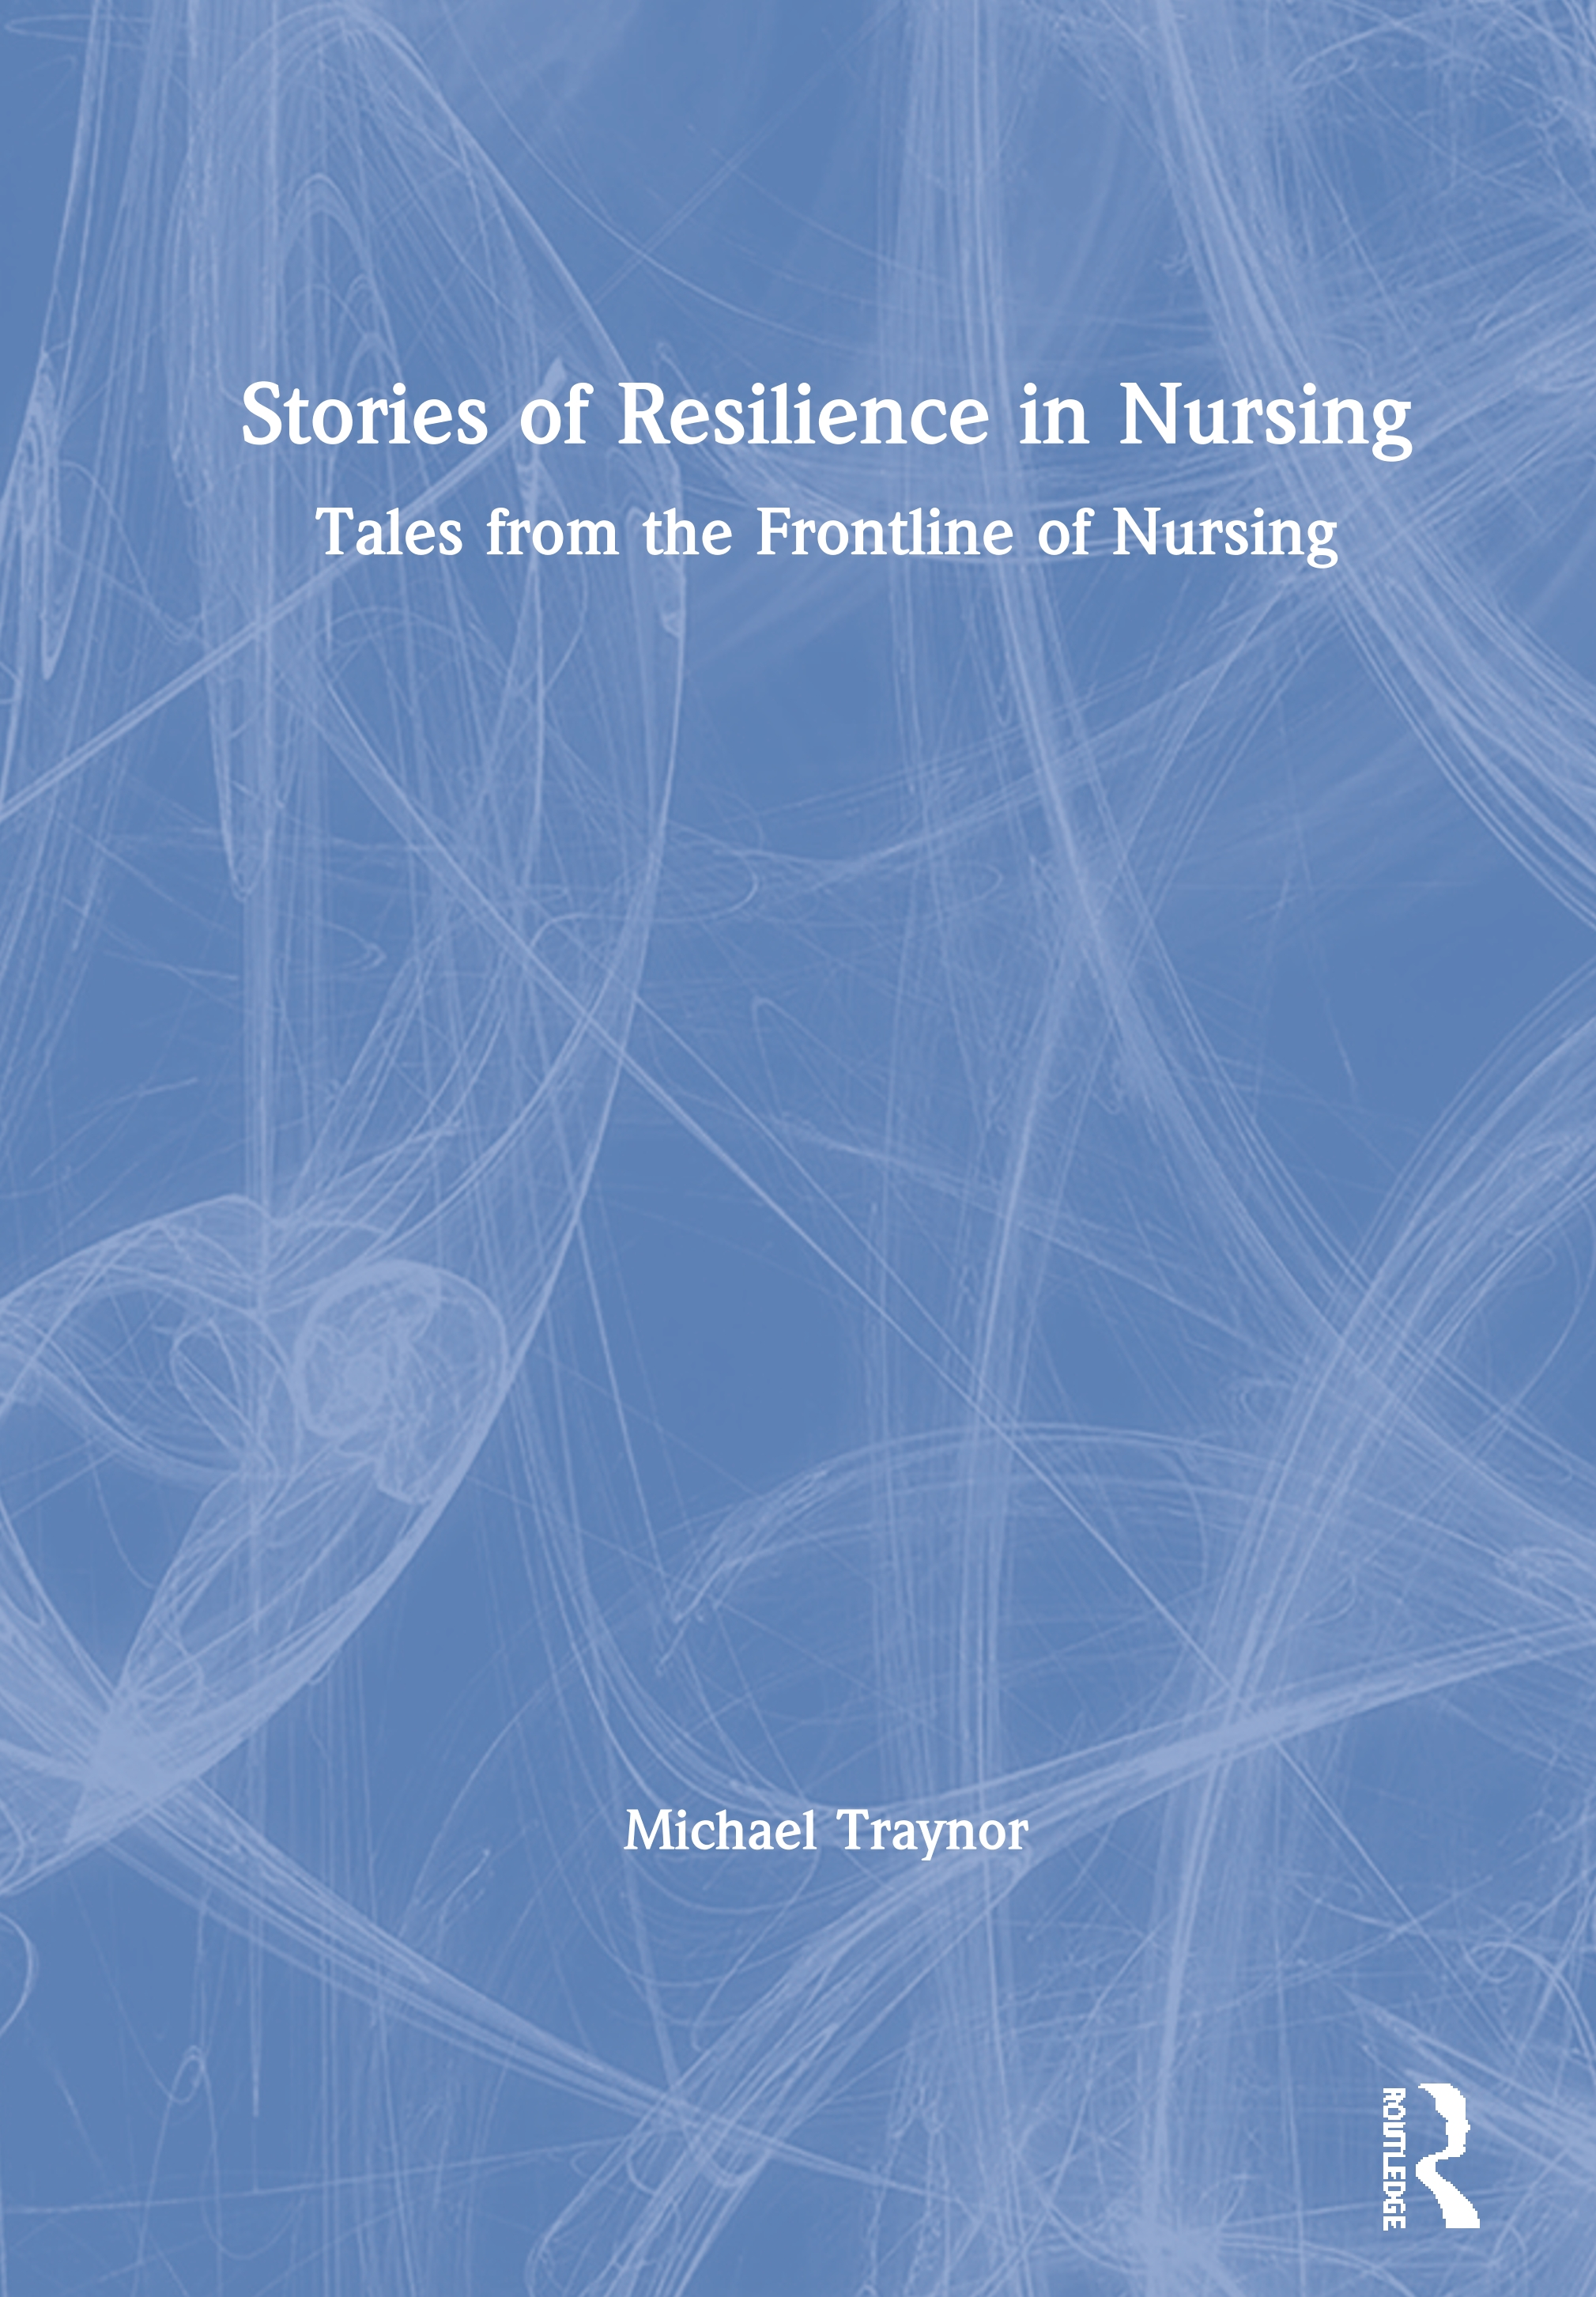 Stories of Resilience in Nursing: Tales from the Frontline of Nursing book cover